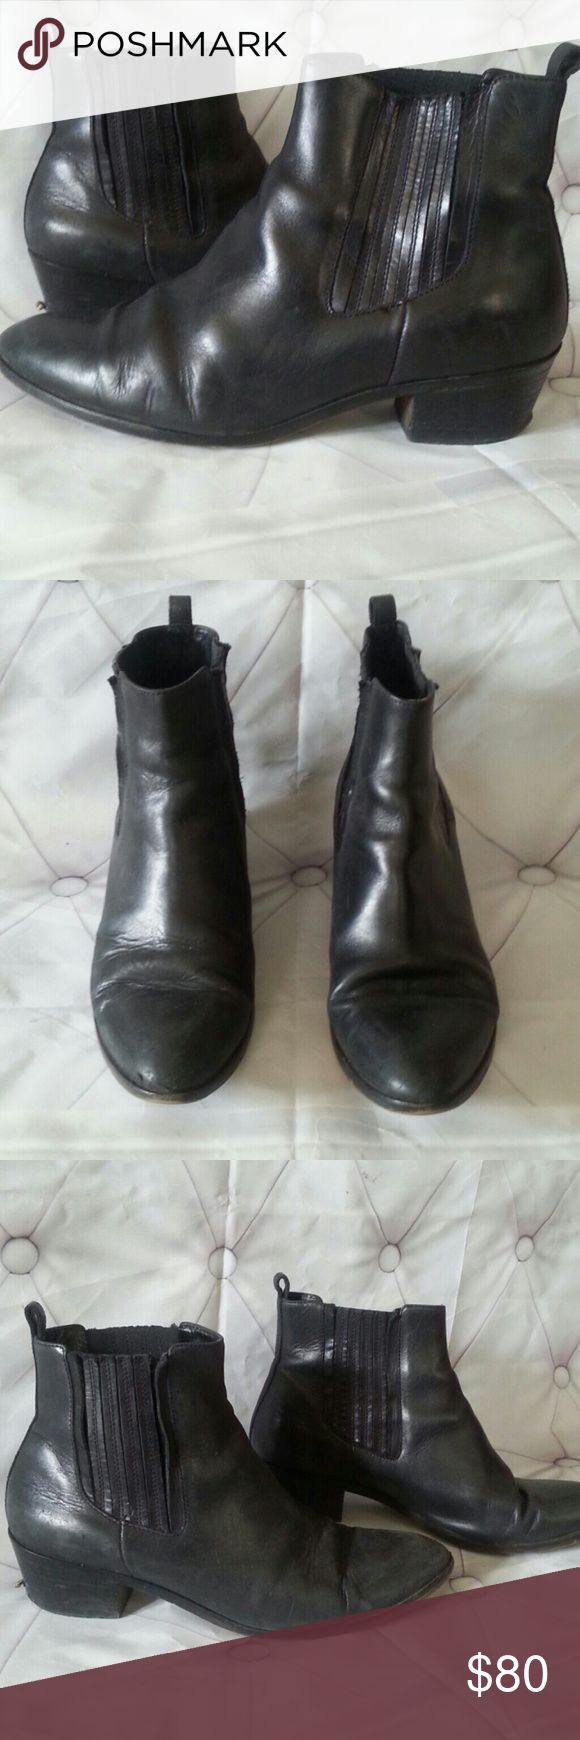 J Crew Charcoal Black Leather Ankle Boots sz 7.5 Well-Loved Broken In J Crew Ankle Boots sz 7.5. Has normal wear over time.Gives it better look over time.Has great character. Heel has some minor wear, can leave as is or have cobbler fix.Great find.Still great for summer with shorts and even better for fall.  Heel height approx 1.5-2 inches j crew Shoes